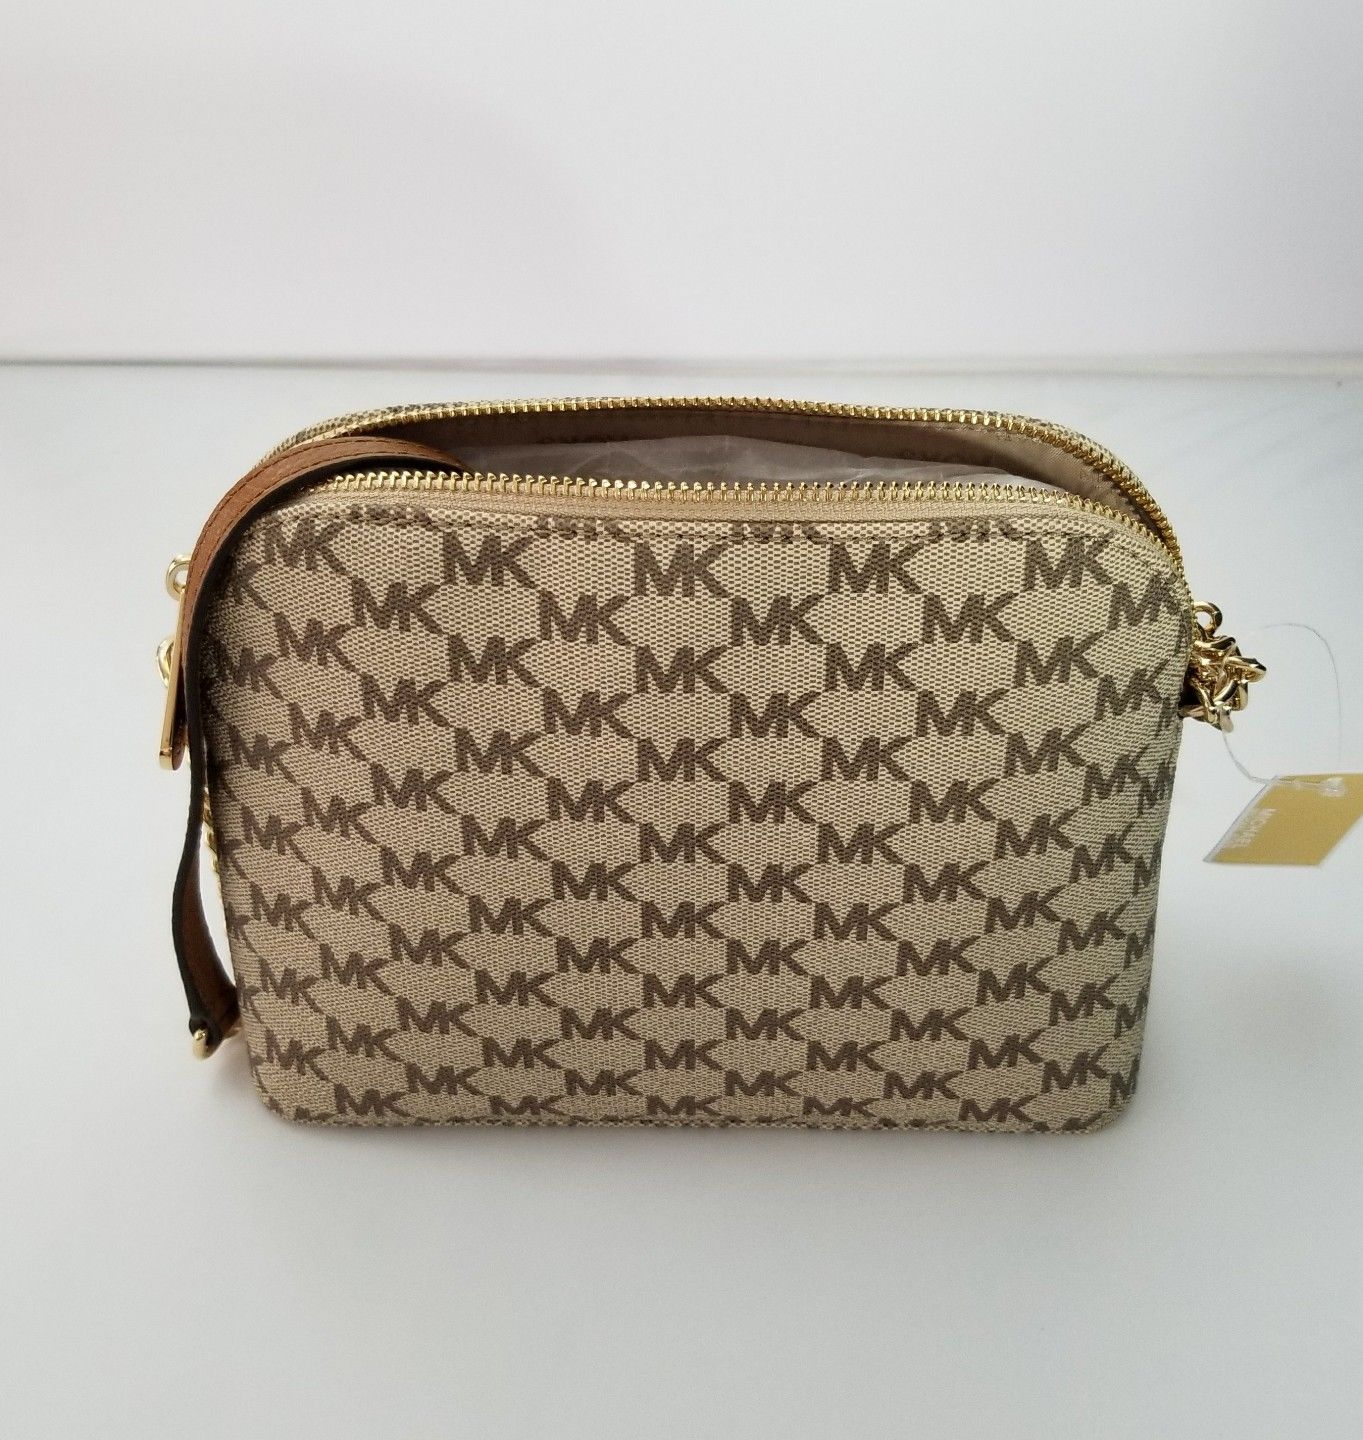 0338050e1df0 ... Michael Kors Cindy Large Dome Crossbody MK Logo Shoulder Strap Natural  Acorn Bag ...